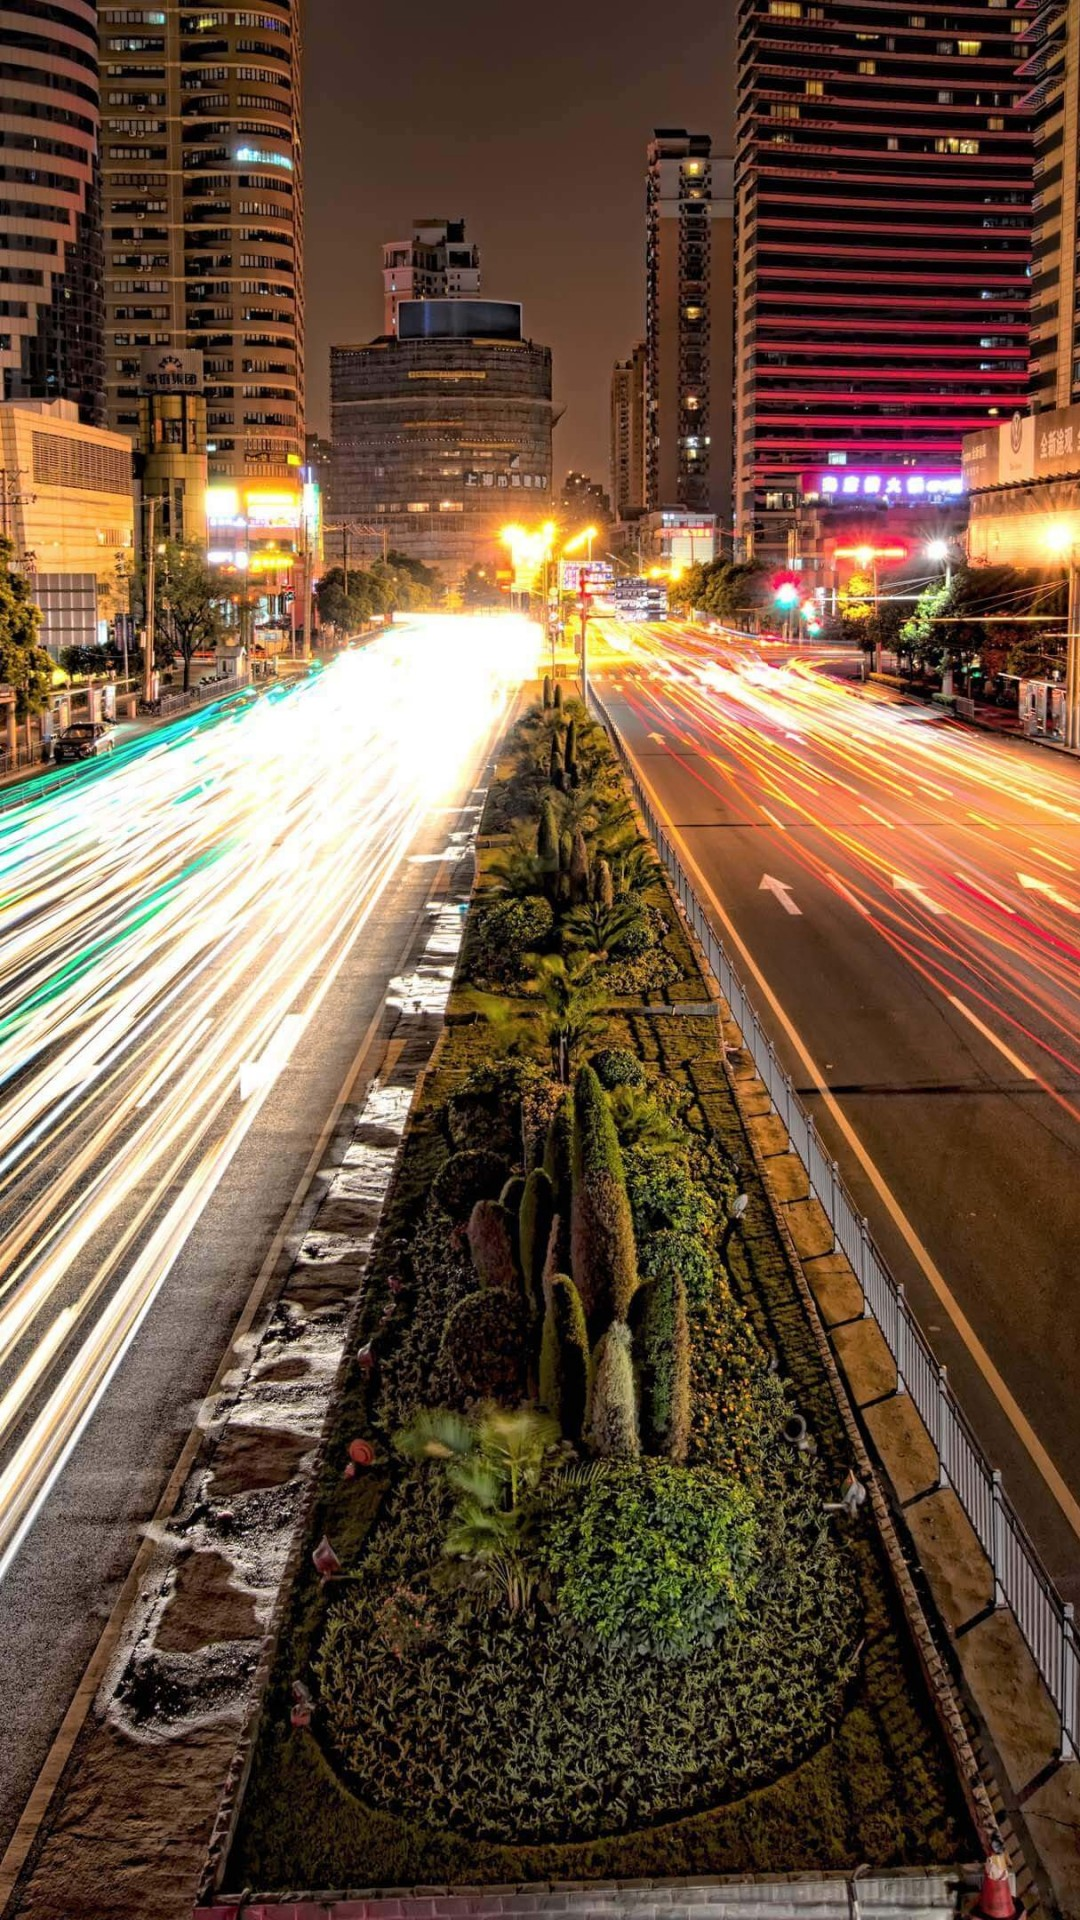 Busy Road in Shanghai at Night Wallpaper for SONY Xperia Z1